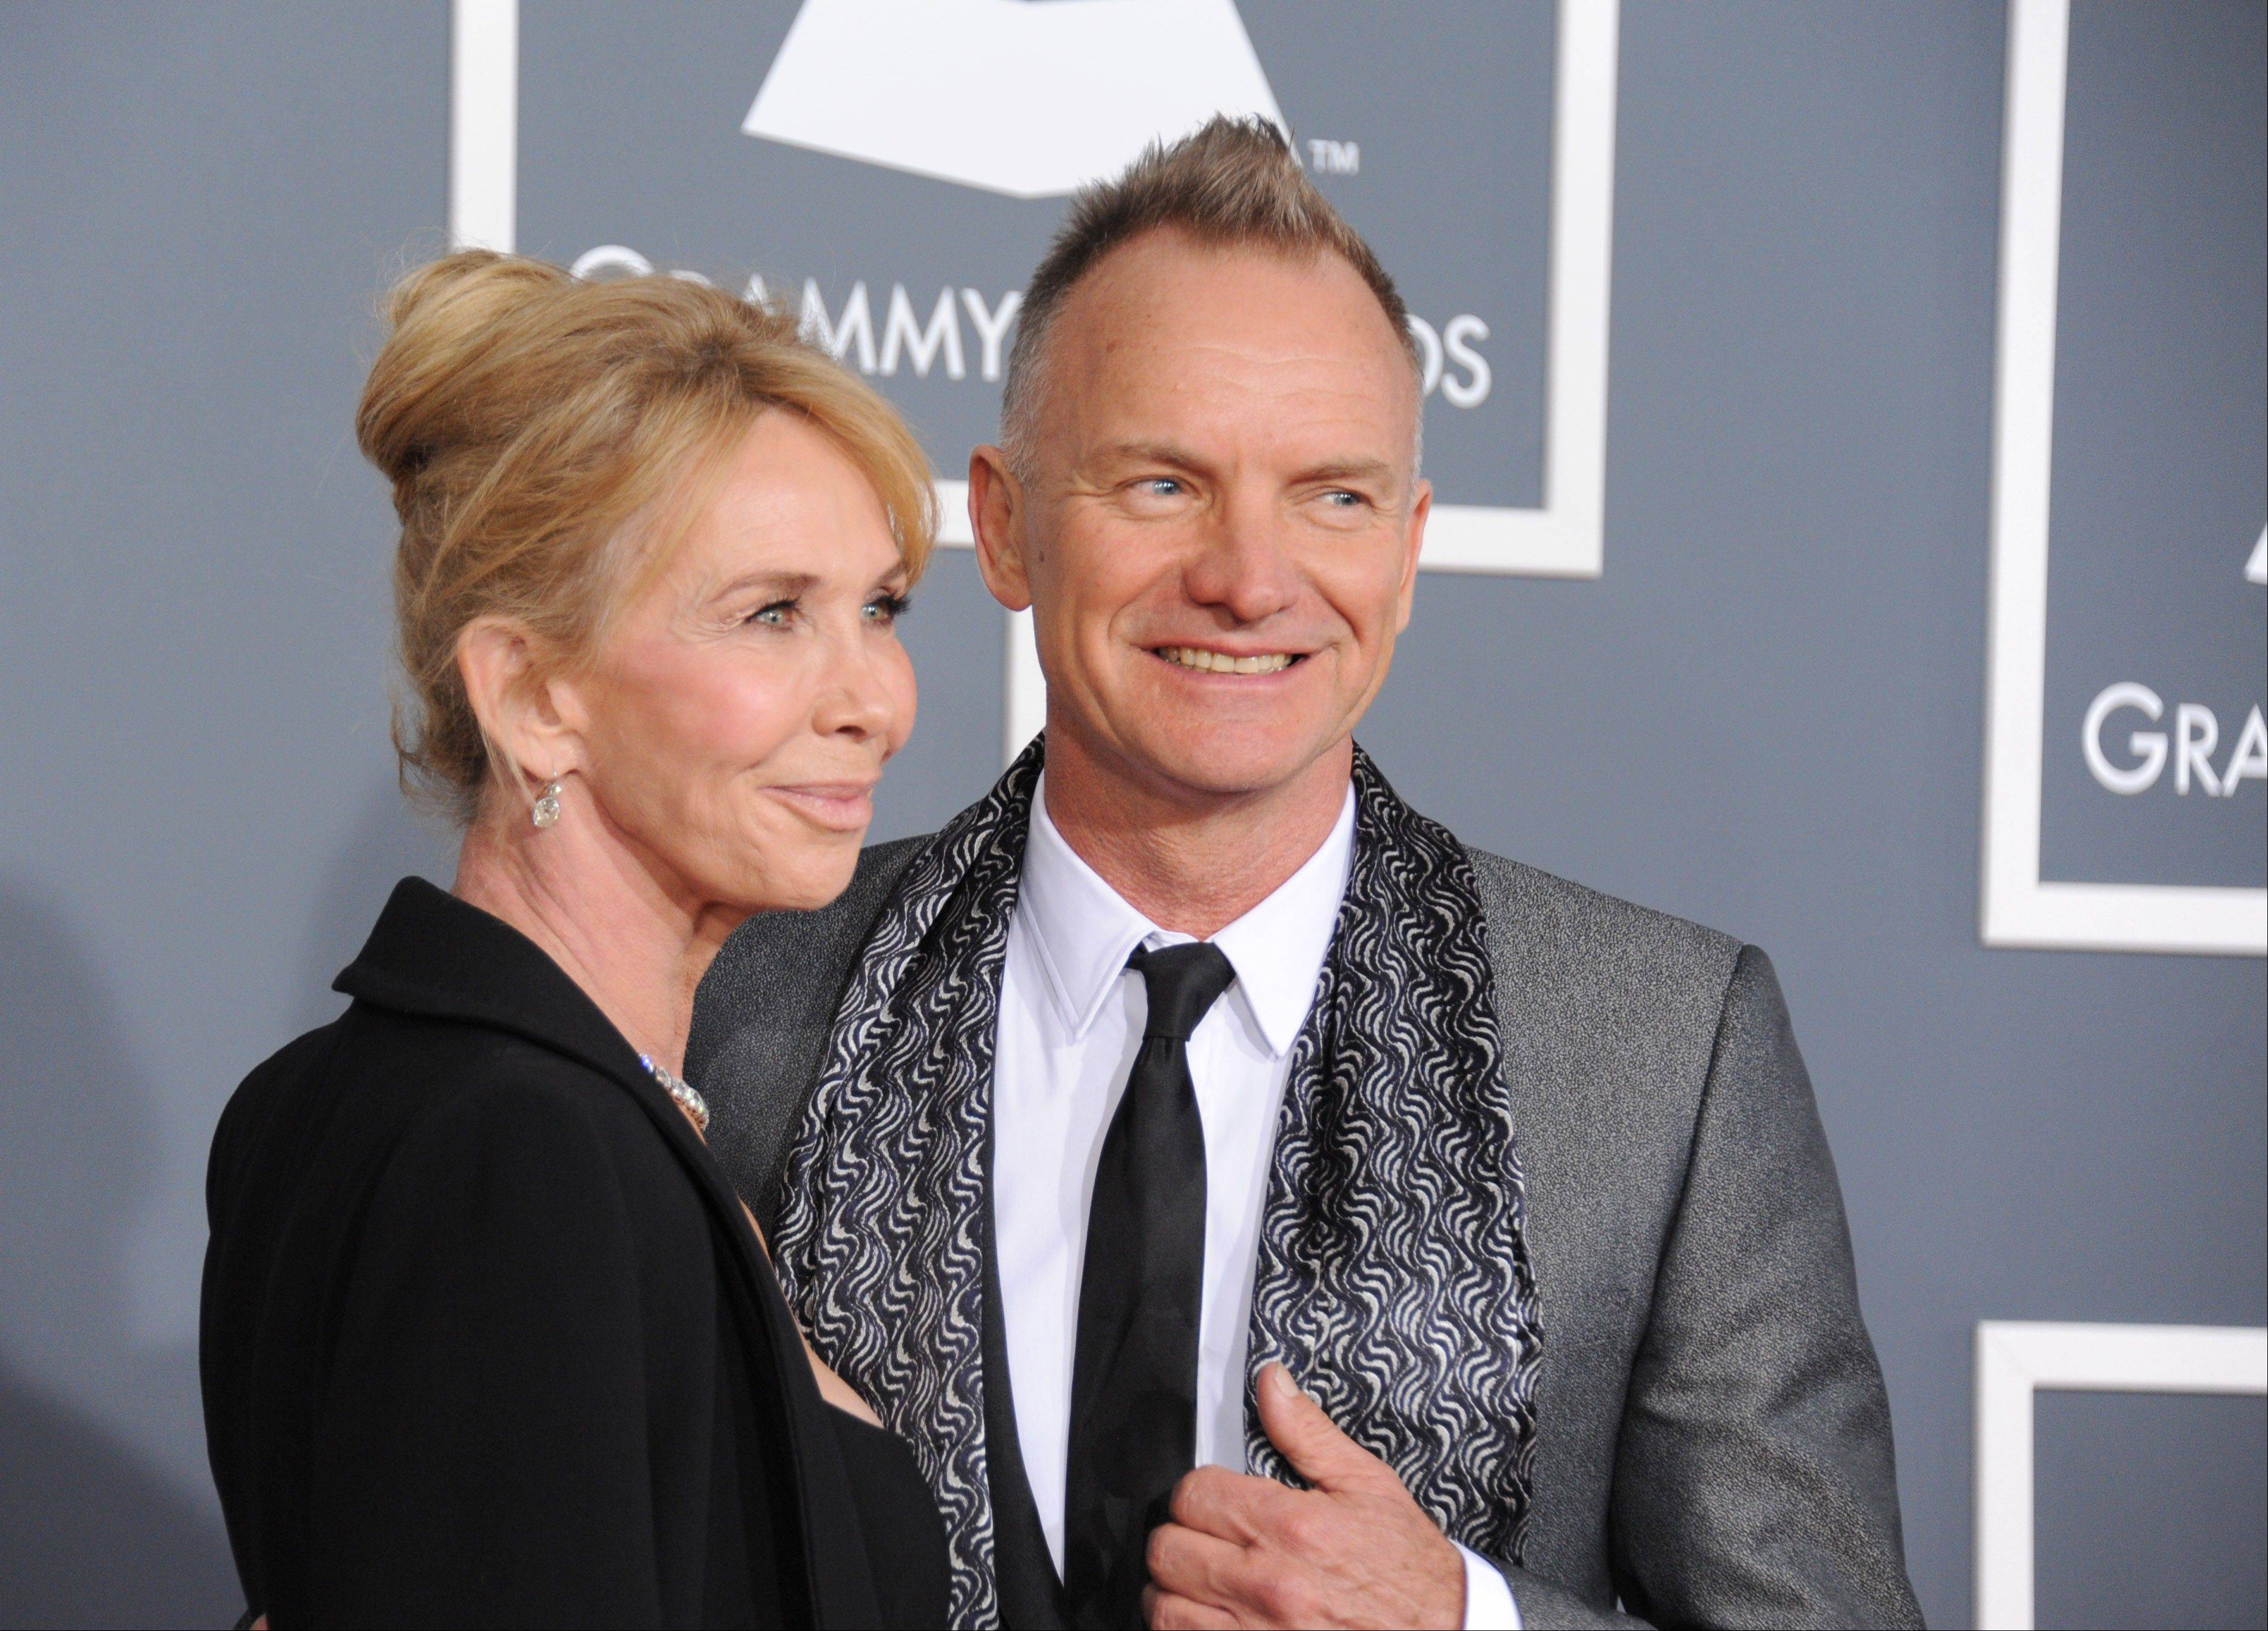 Trudie Styler, left, and musician Sting arrive at the 55th annual Grammy Awards on Sunday, Feb. 10, 2013, in Los Angeles.